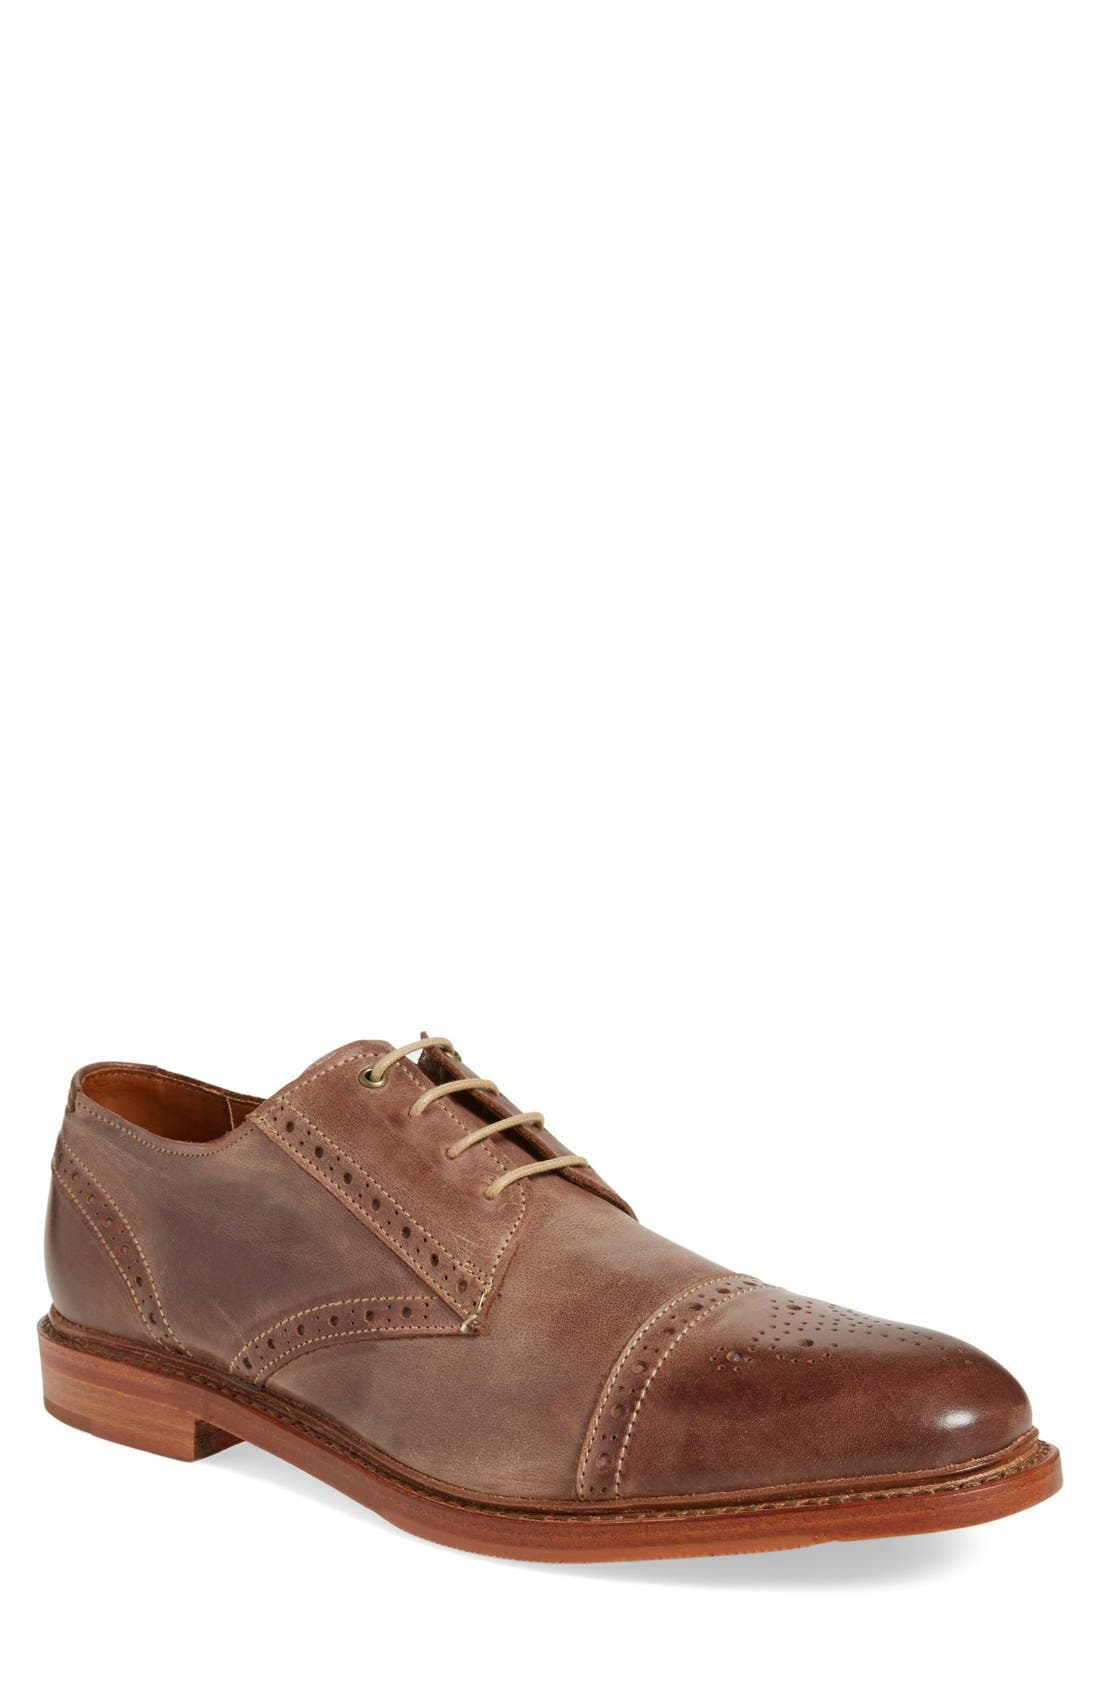 Alternate Image 1 Selected - Allen Edmonds 'Bainbridge' Cap Toe Derby (Men)